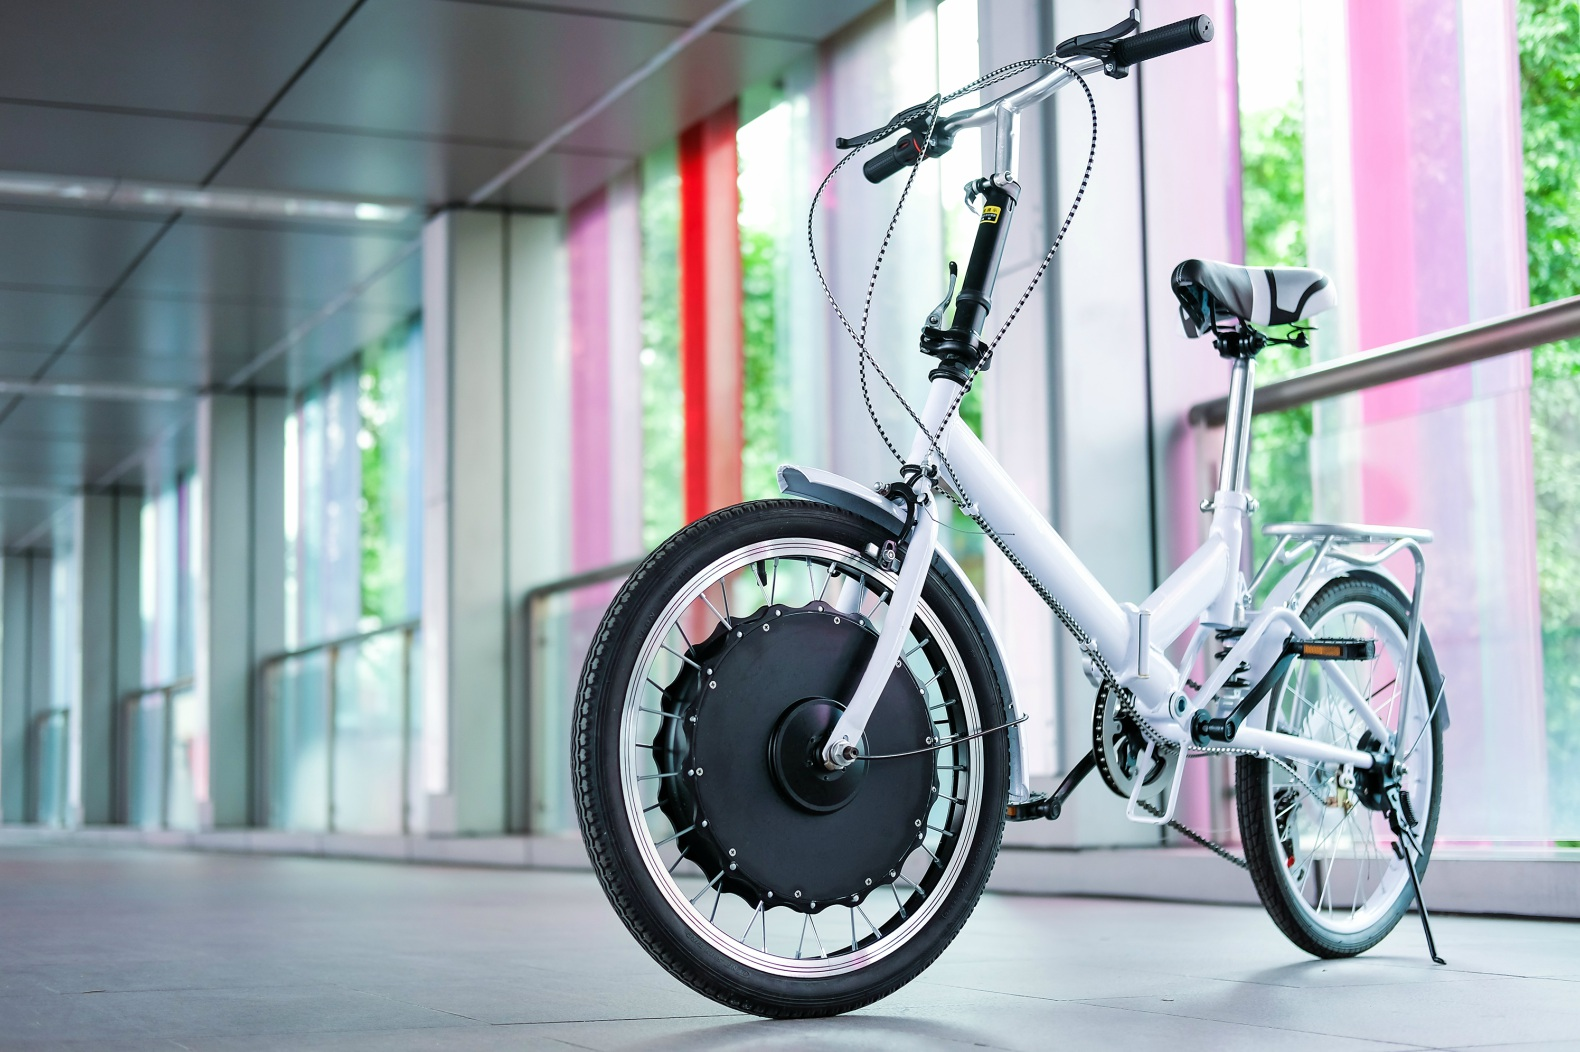 EvoWheel converts almost any bicycle into an electric bike in just 30 seconds